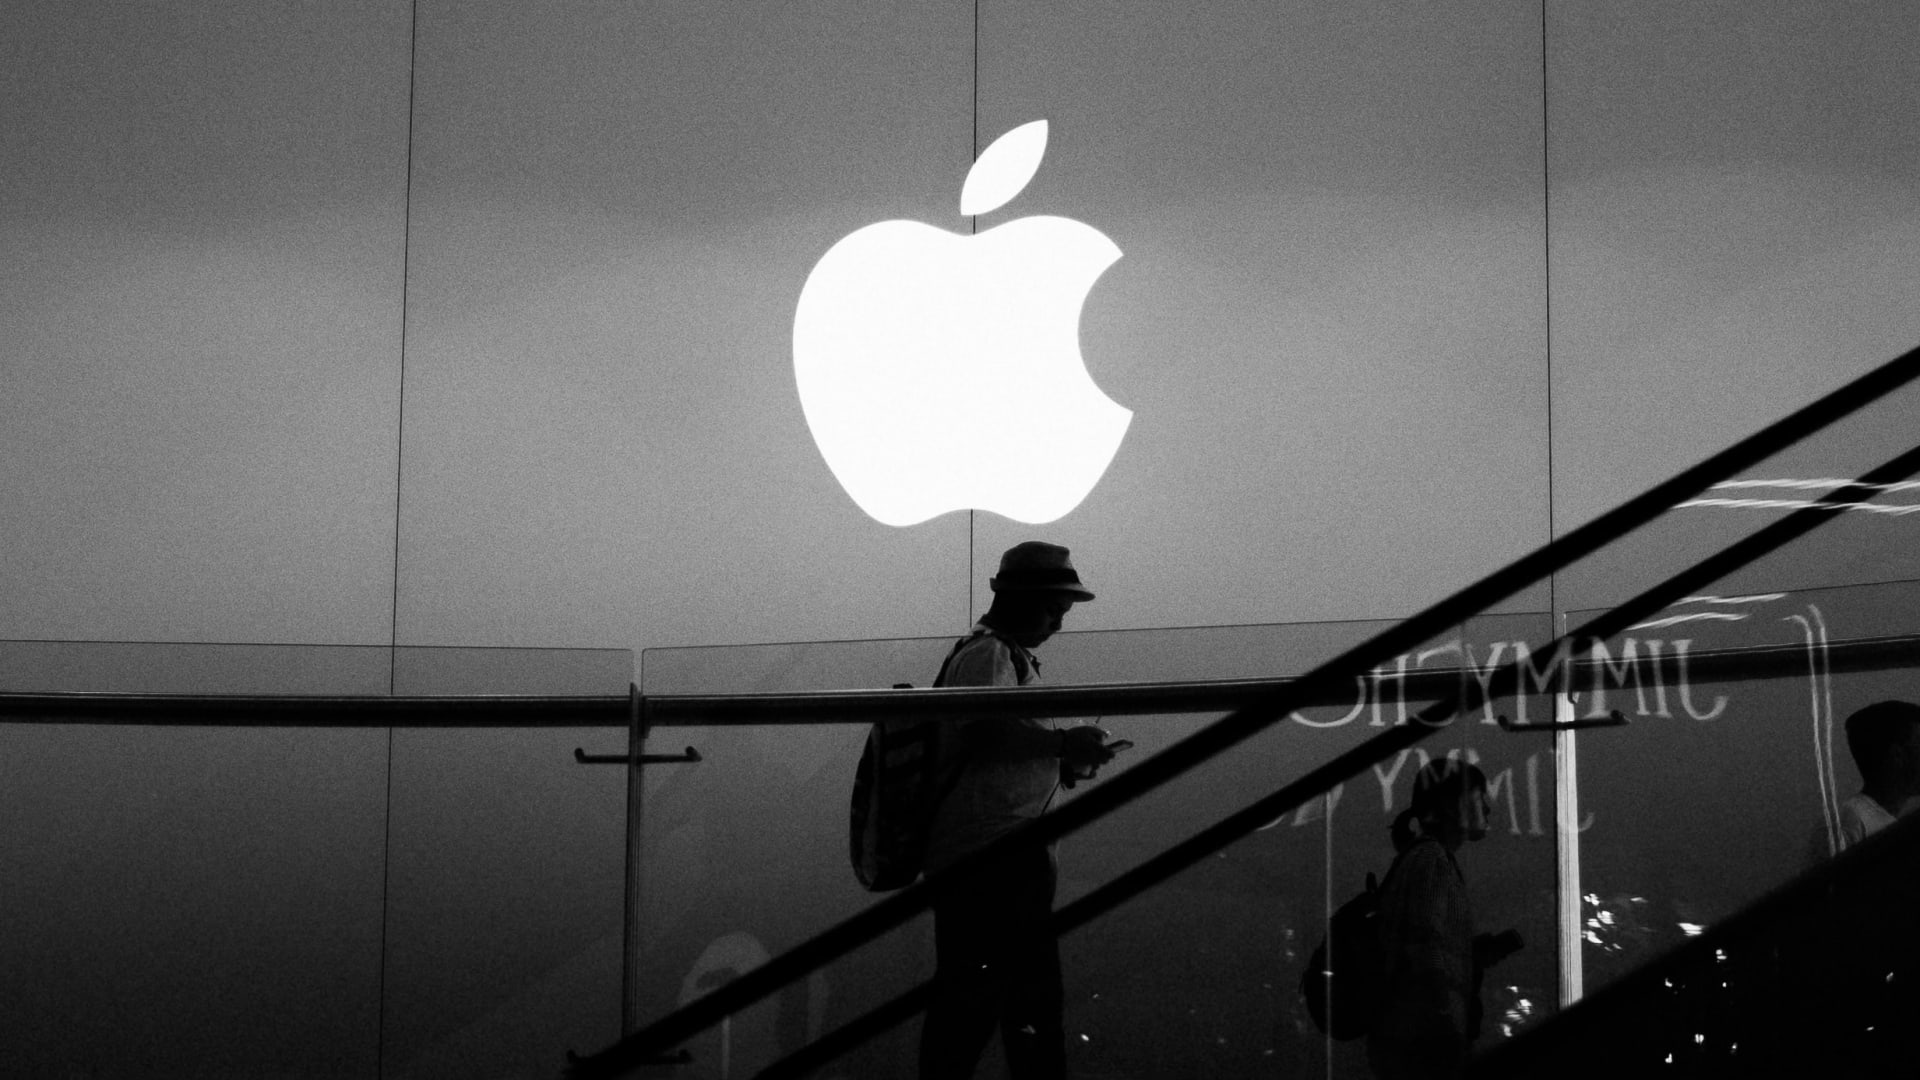 I Spent $2,000 at the Apple Store and Got an Invaluable Lesson in Consumer Psychology